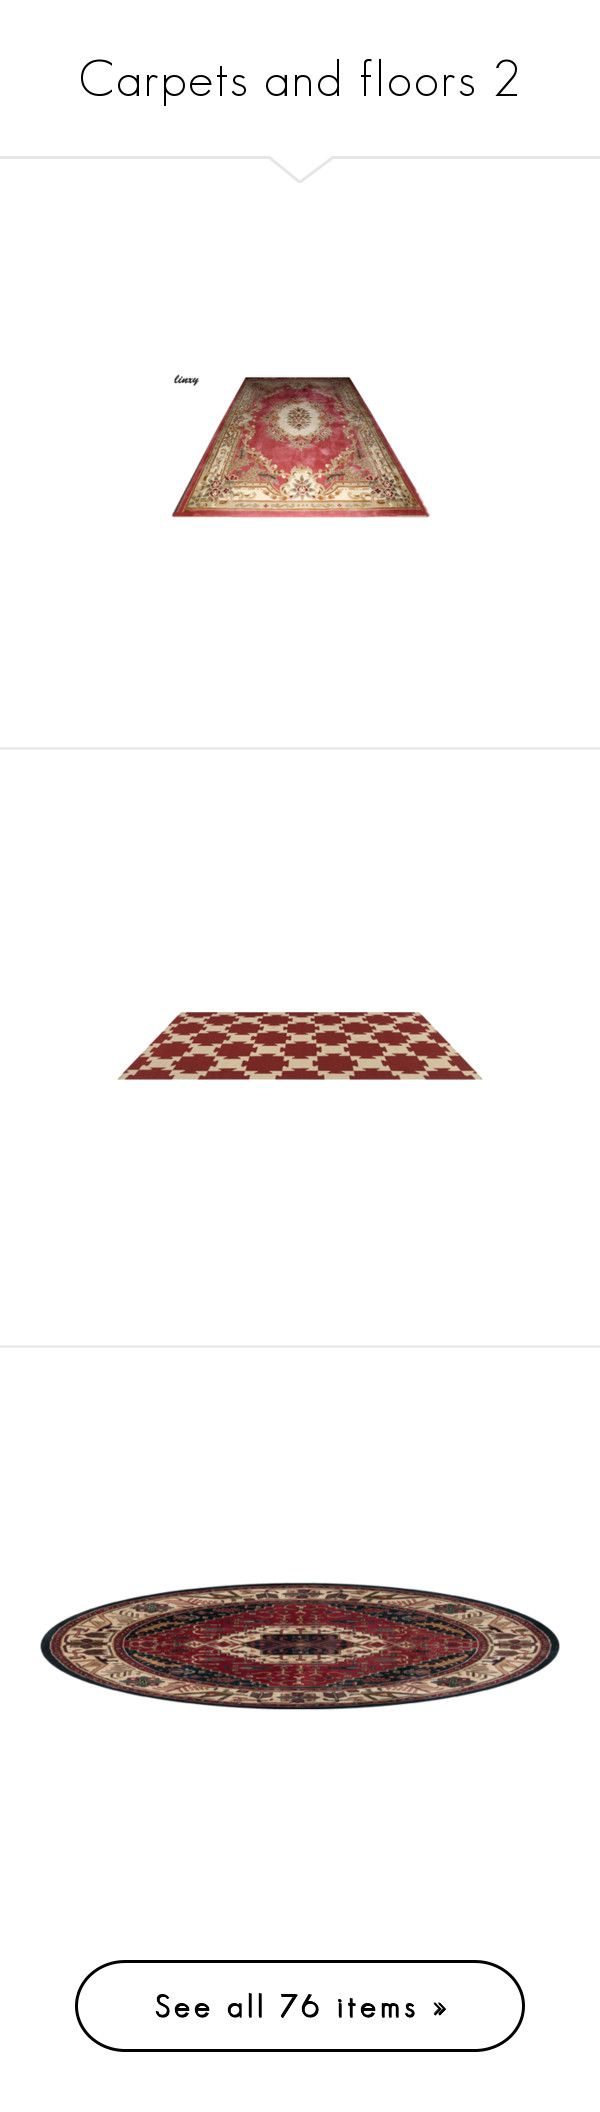 """""""Carpets and floors 2"""" by lynxe ❤ liked on Polyvore featuring rugs, carpet, filler, home, tapetes, hand woven area rugs, hand-loomed rug, flatweave rugs, flat weave rugs and hand woven rugs"""